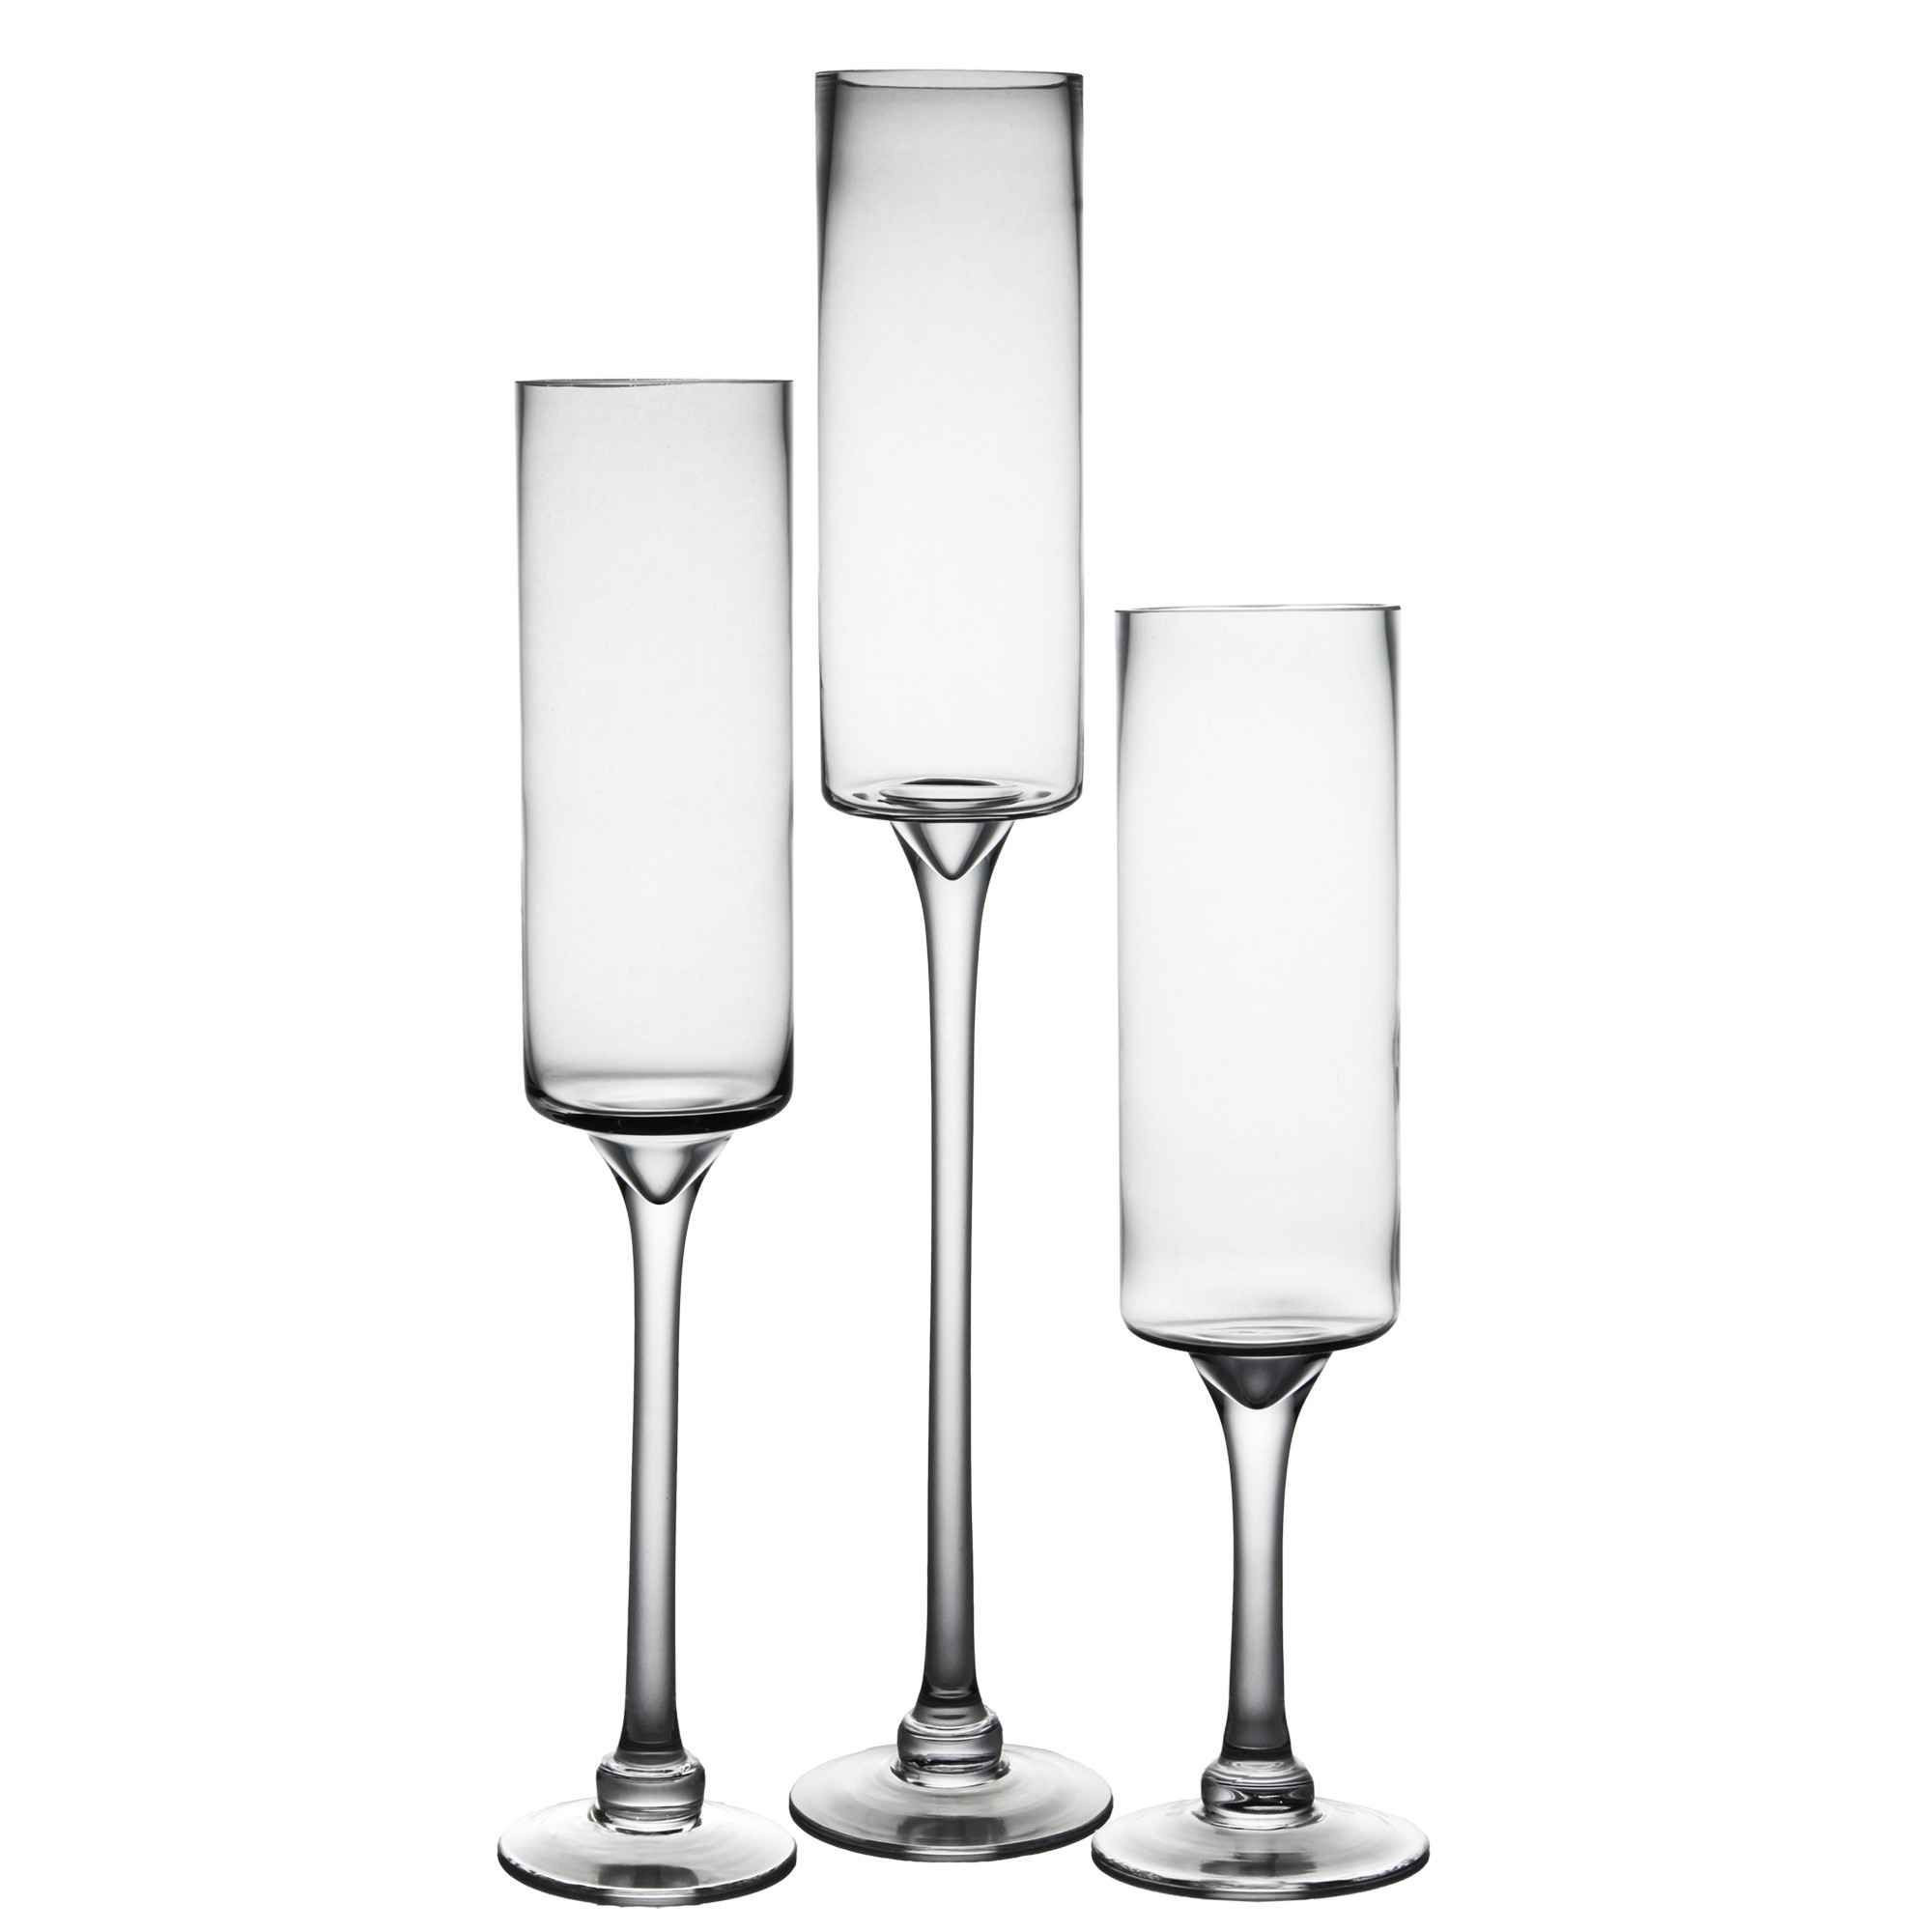 Glass Candle Vases wholesale Of Big Glass Vase Beautiful L H Vases 12 Inch Hurricane Clear Glass Throughout Big Glass Vase Beautiful L H Vases 12 Inch Hurricane Clear Glass Vase I 0d Cheap In